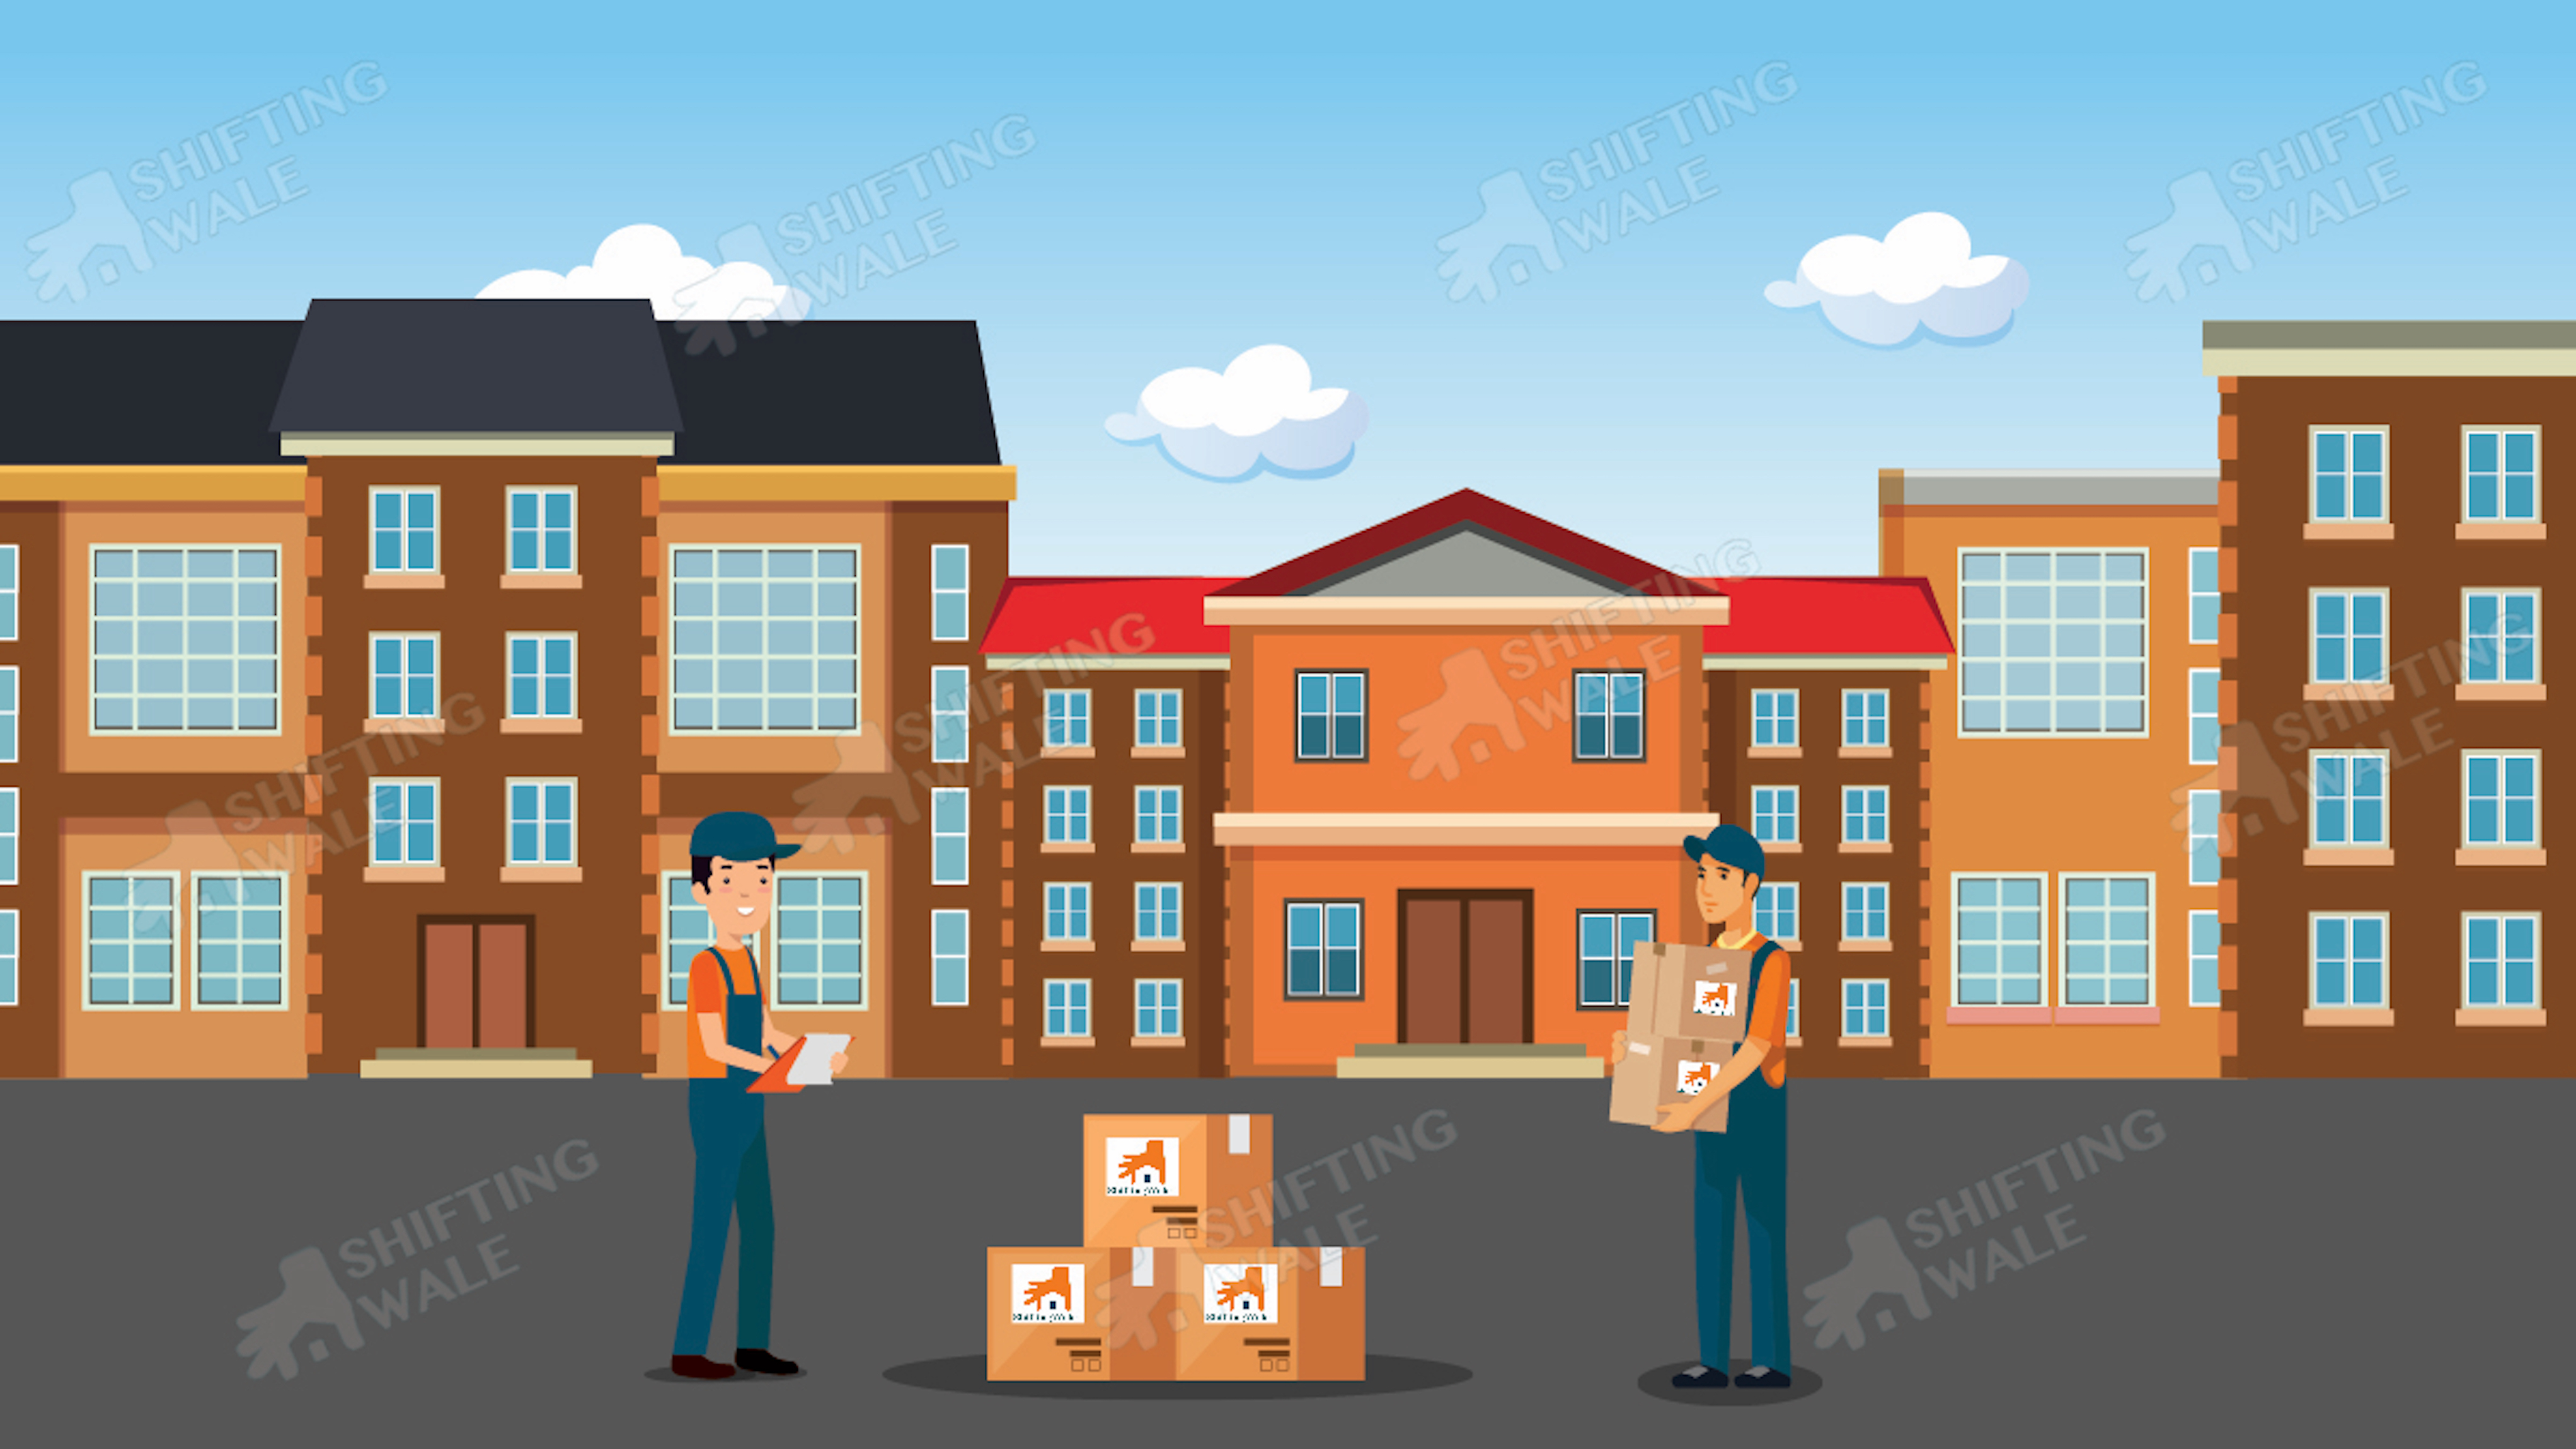 Lucknow to Ghaziabad Trusted Packers and Movers Get Best Rates